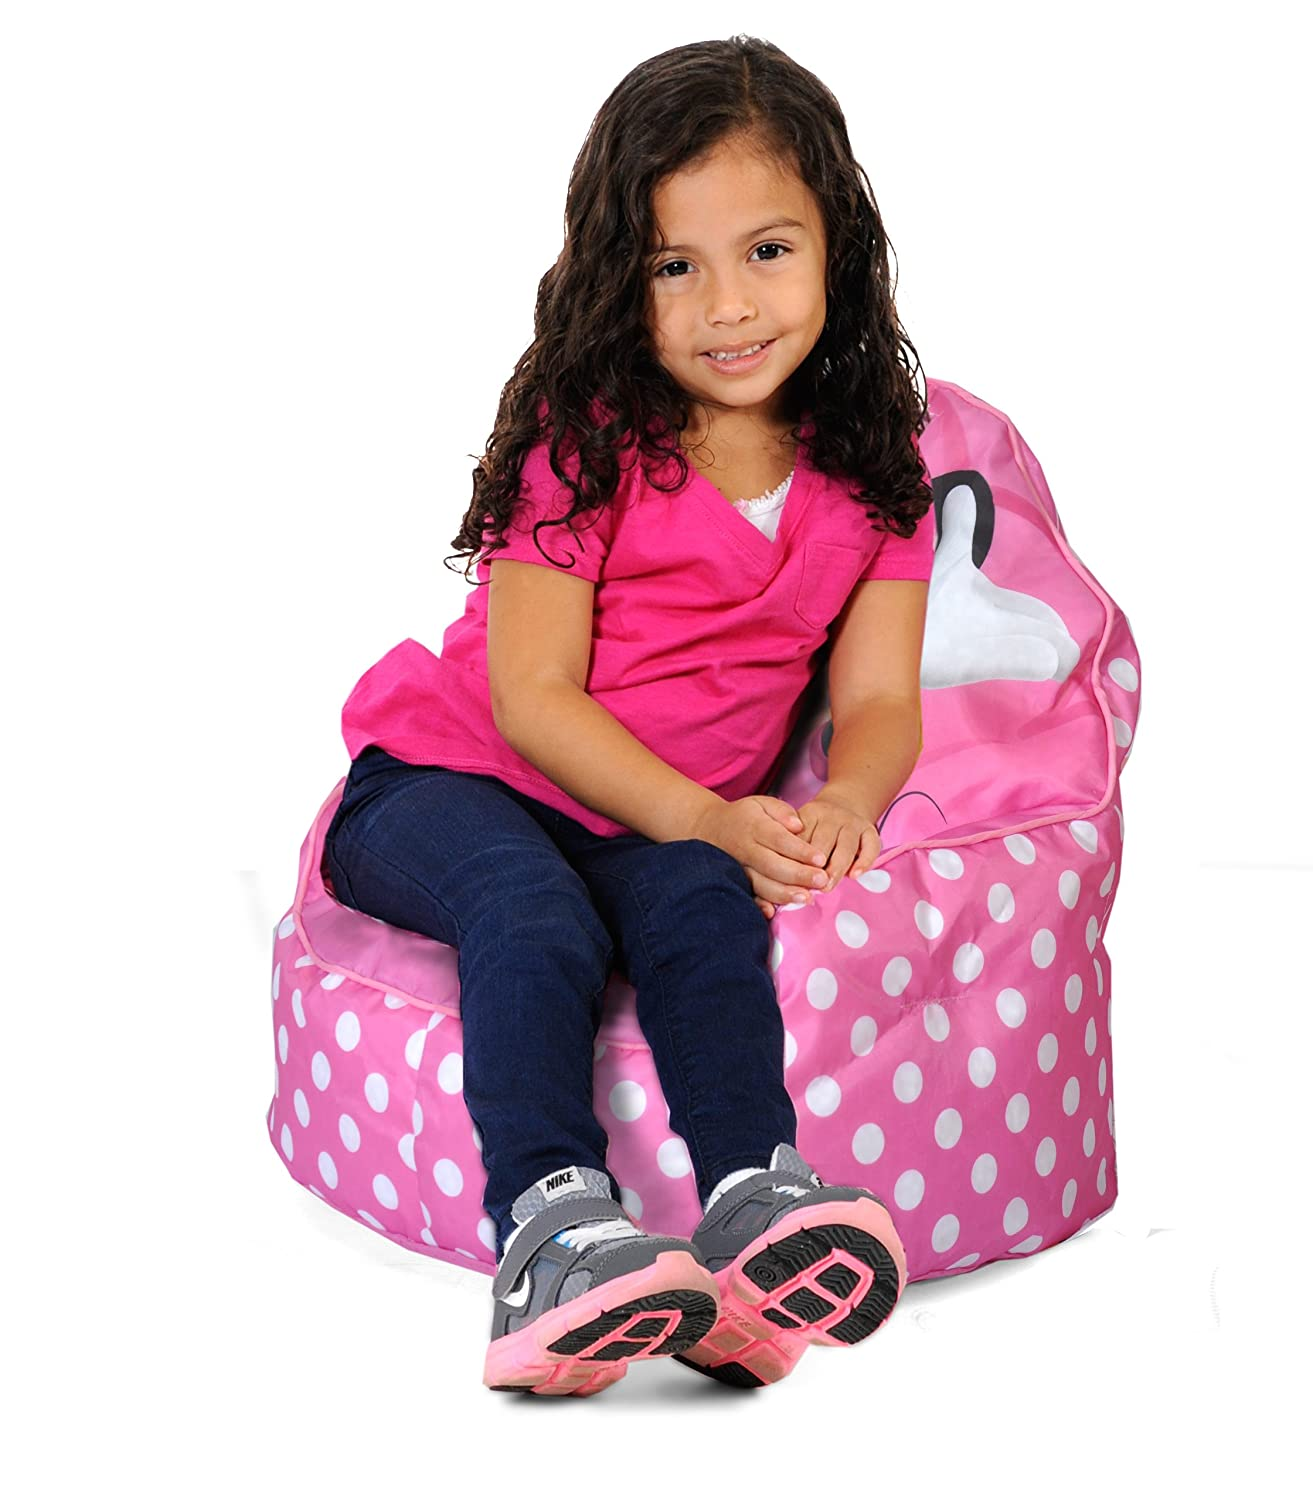 Buy Disney Minnie Mouse Toddler Bean Bag Sofa Chair Online At Low Prices In India